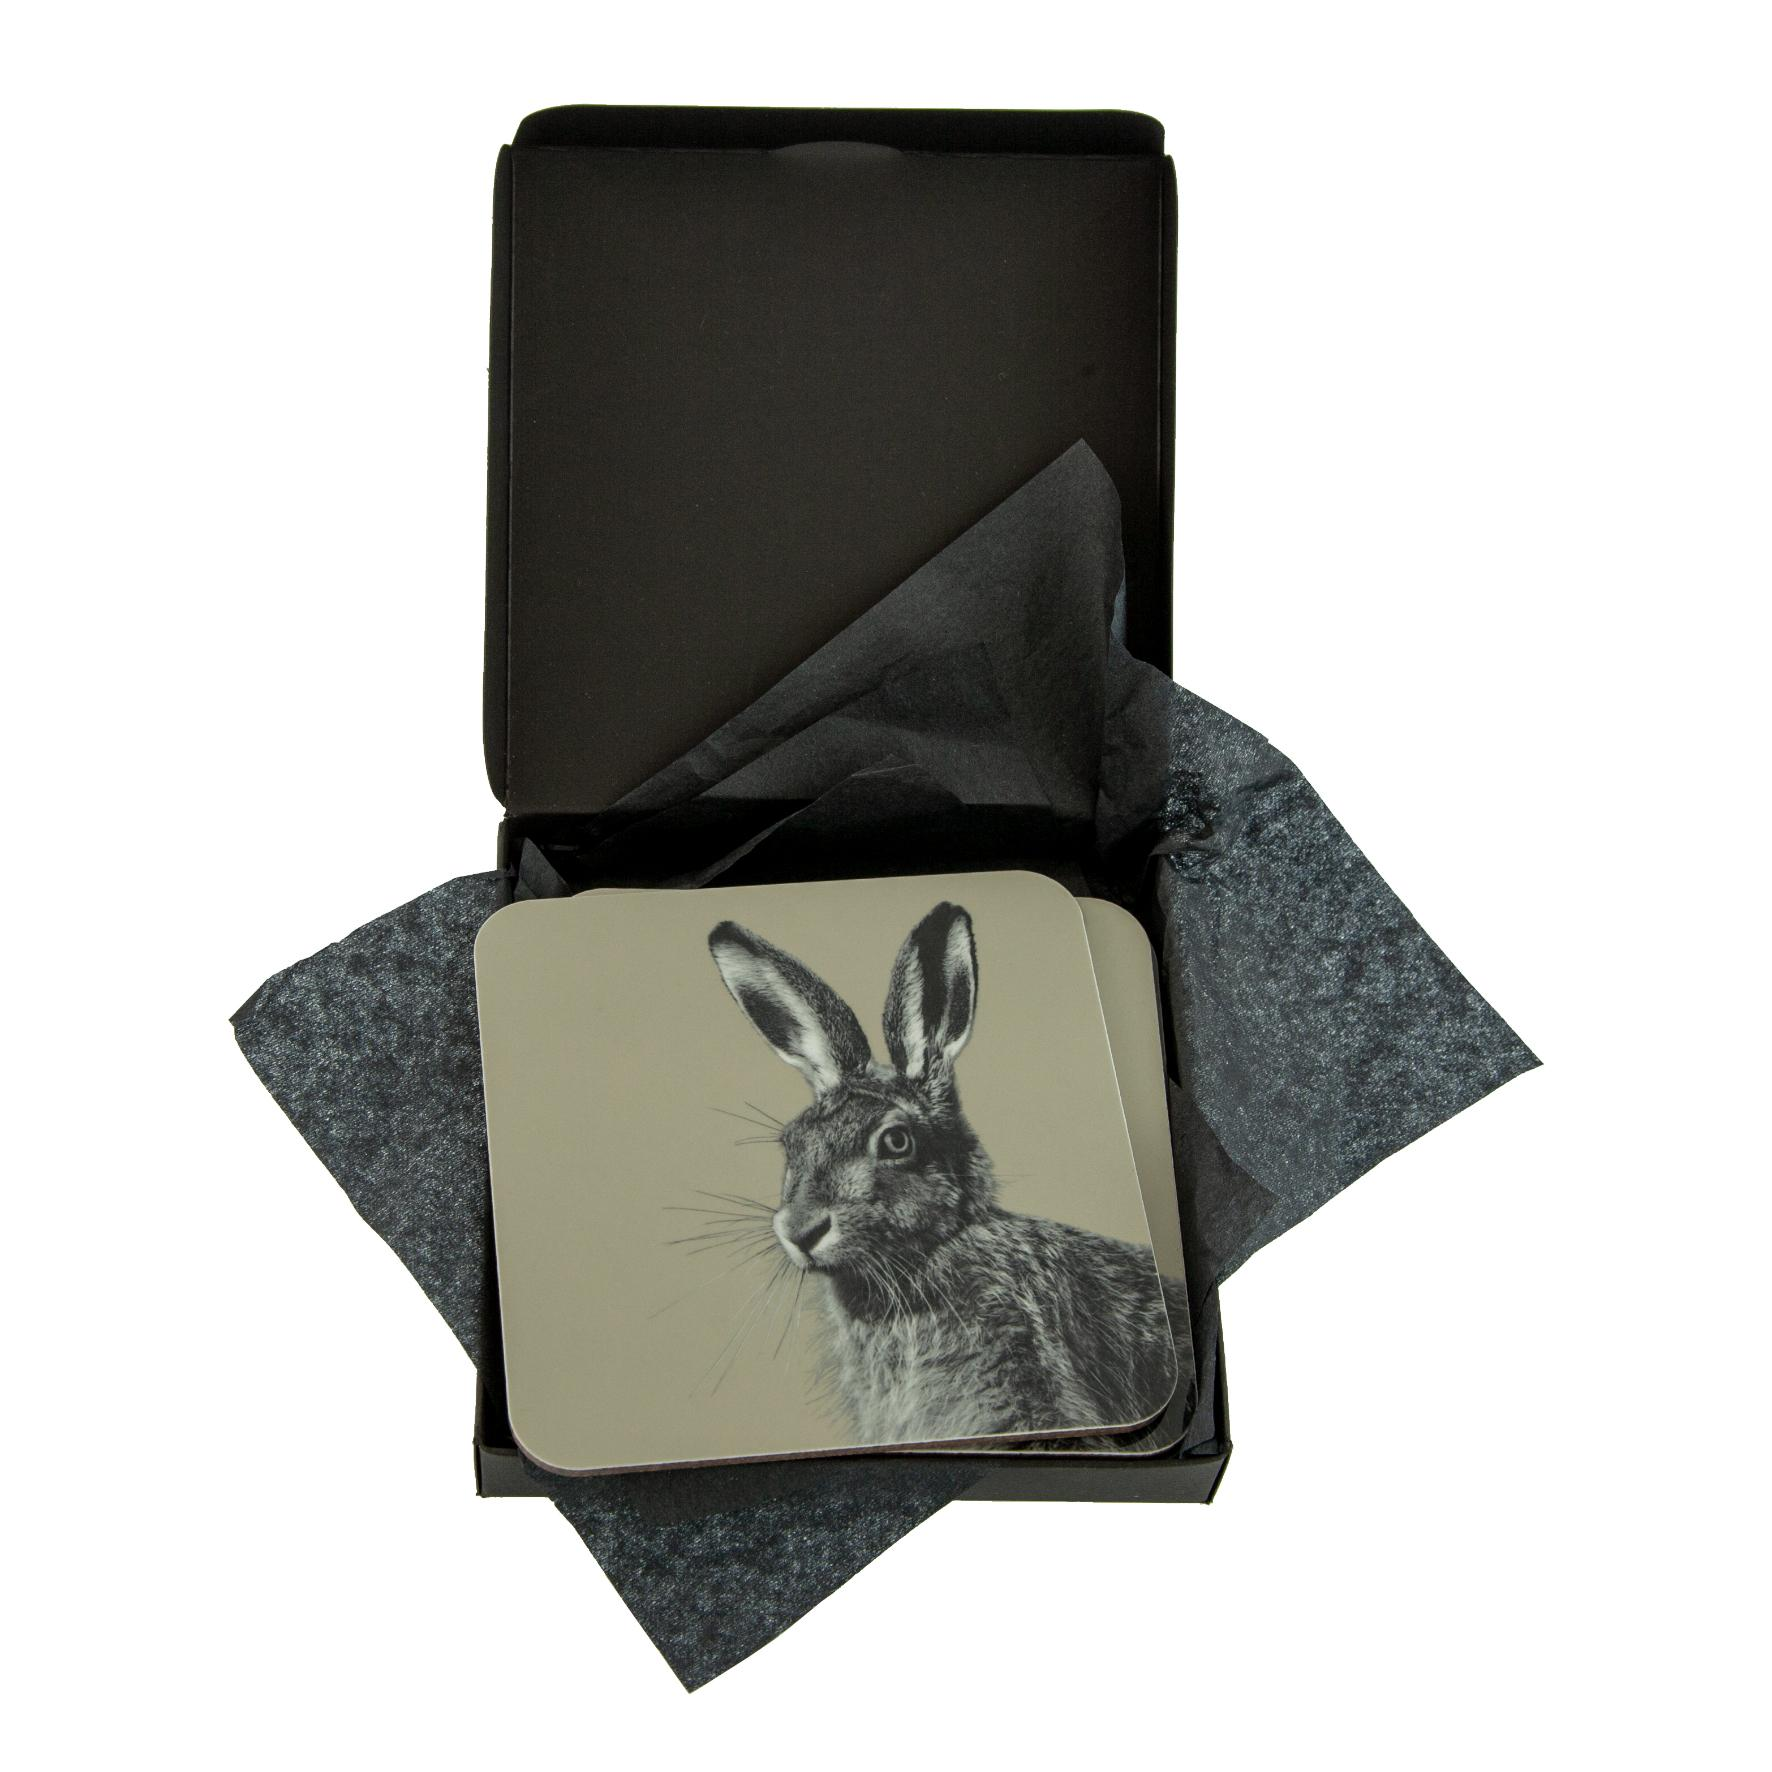 Hare Coaster on Sand Grey